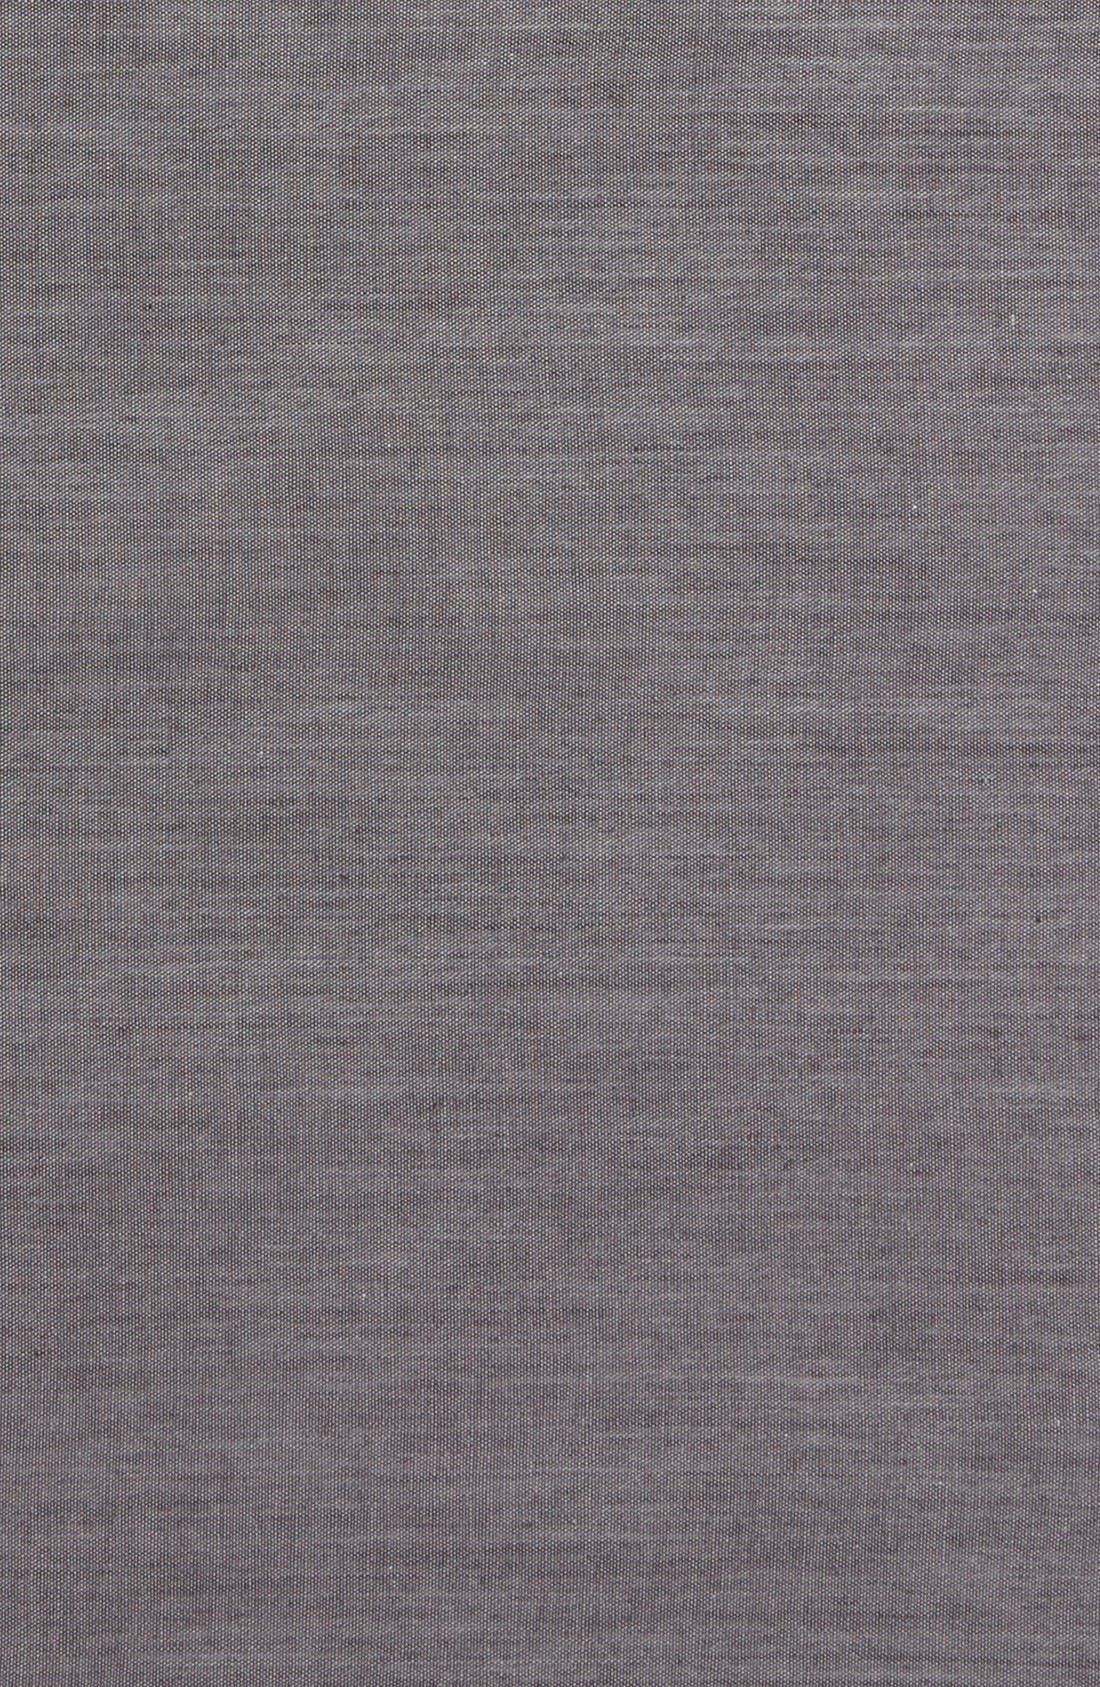 Alternate Image 3  - The Tie Bar Chambray Cotton Pocket Square